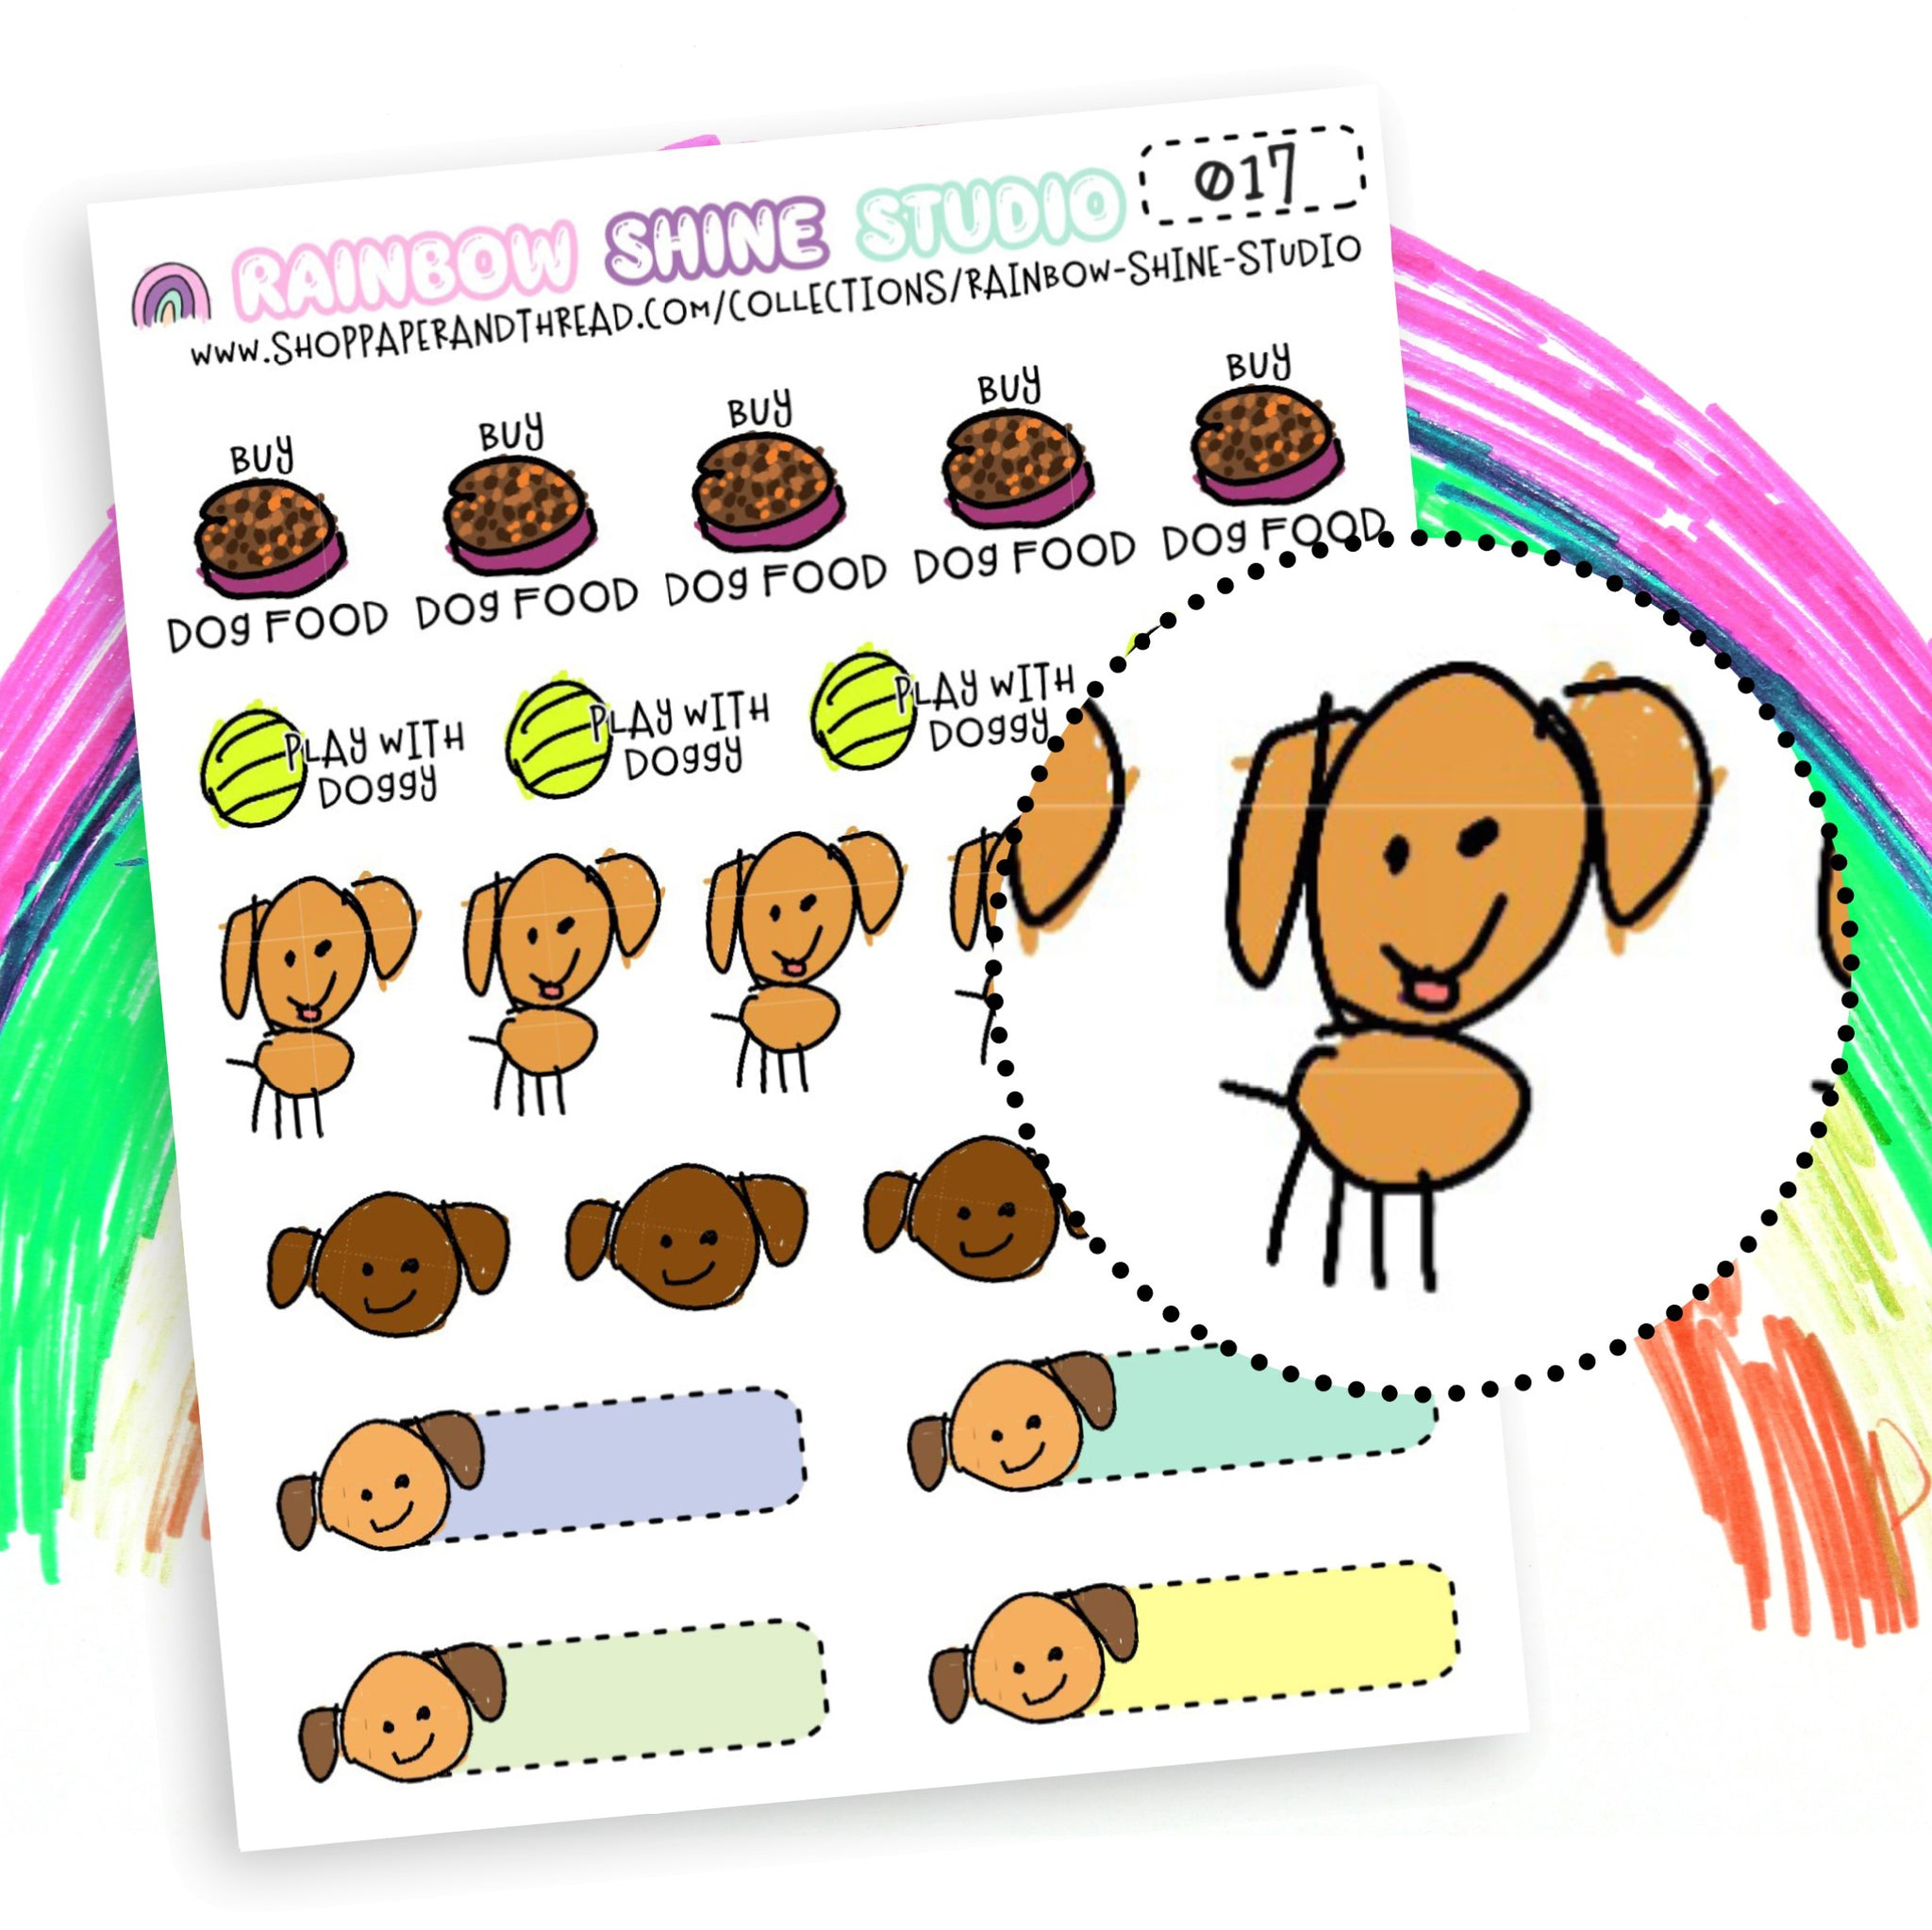 Dog Care Planner Stickers - Pet Care Planner Stickers - Puppy Planner Stickers - Doodle Planner Stickers - Rainbow Shine Studio - 017